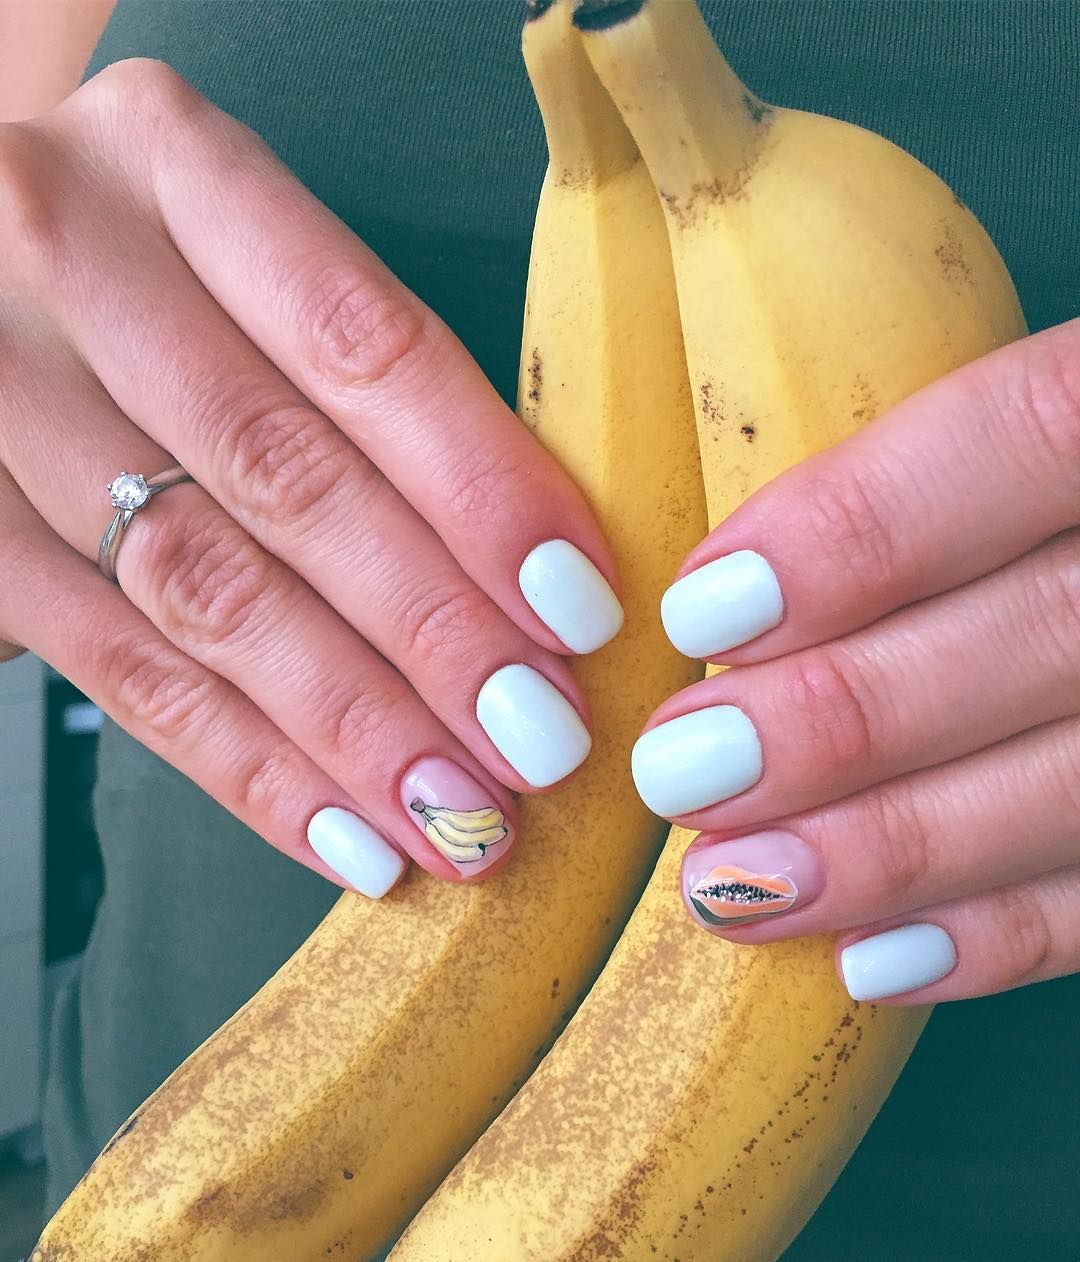 awesome 25 Ideas on Pink and White Nails - Spring Inspiration for You Check more at http://newaylook.com/best-pink-and-white-nails/